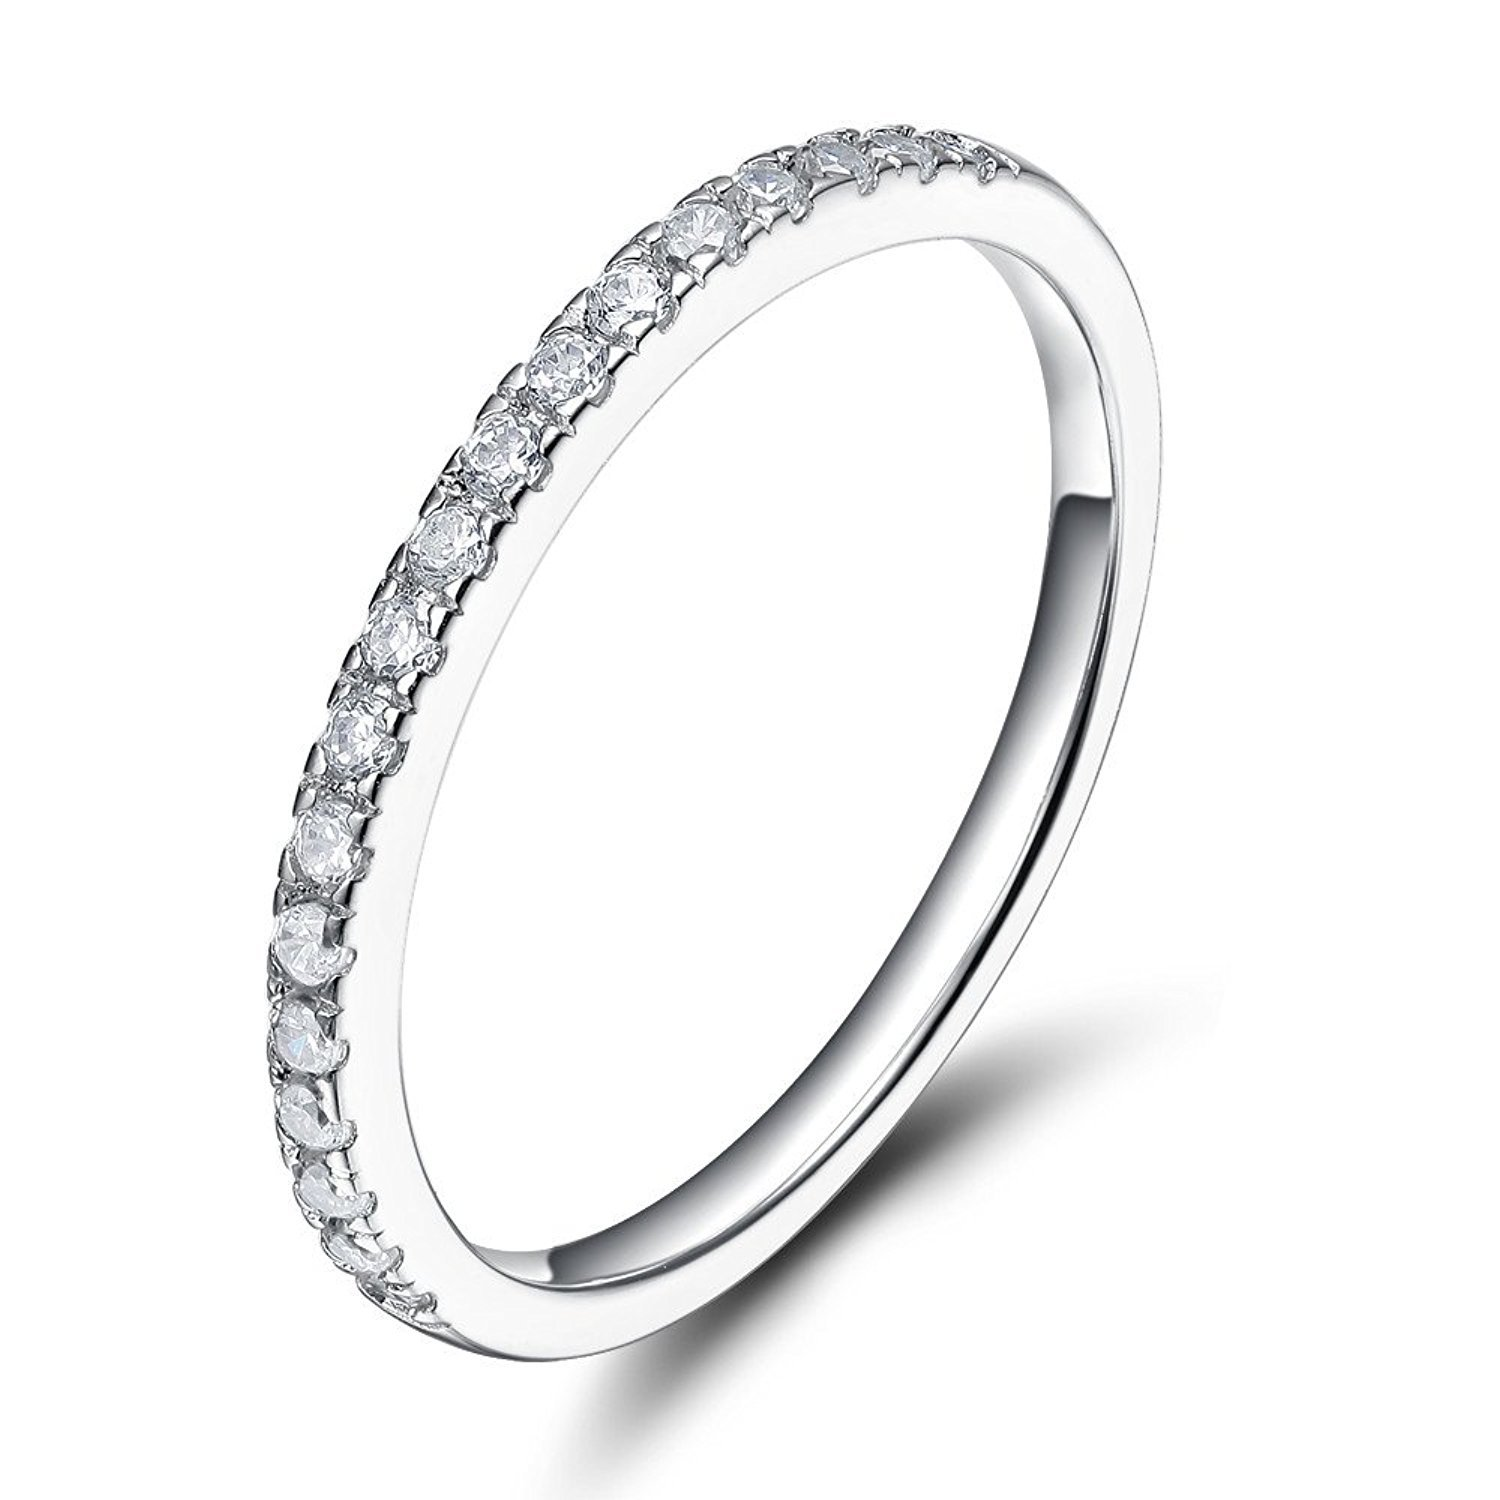 Sz 8.0 Solid 10K White Gold Diamond 2MM Half Eternity Stackable Wedding Anniversary Band Ring